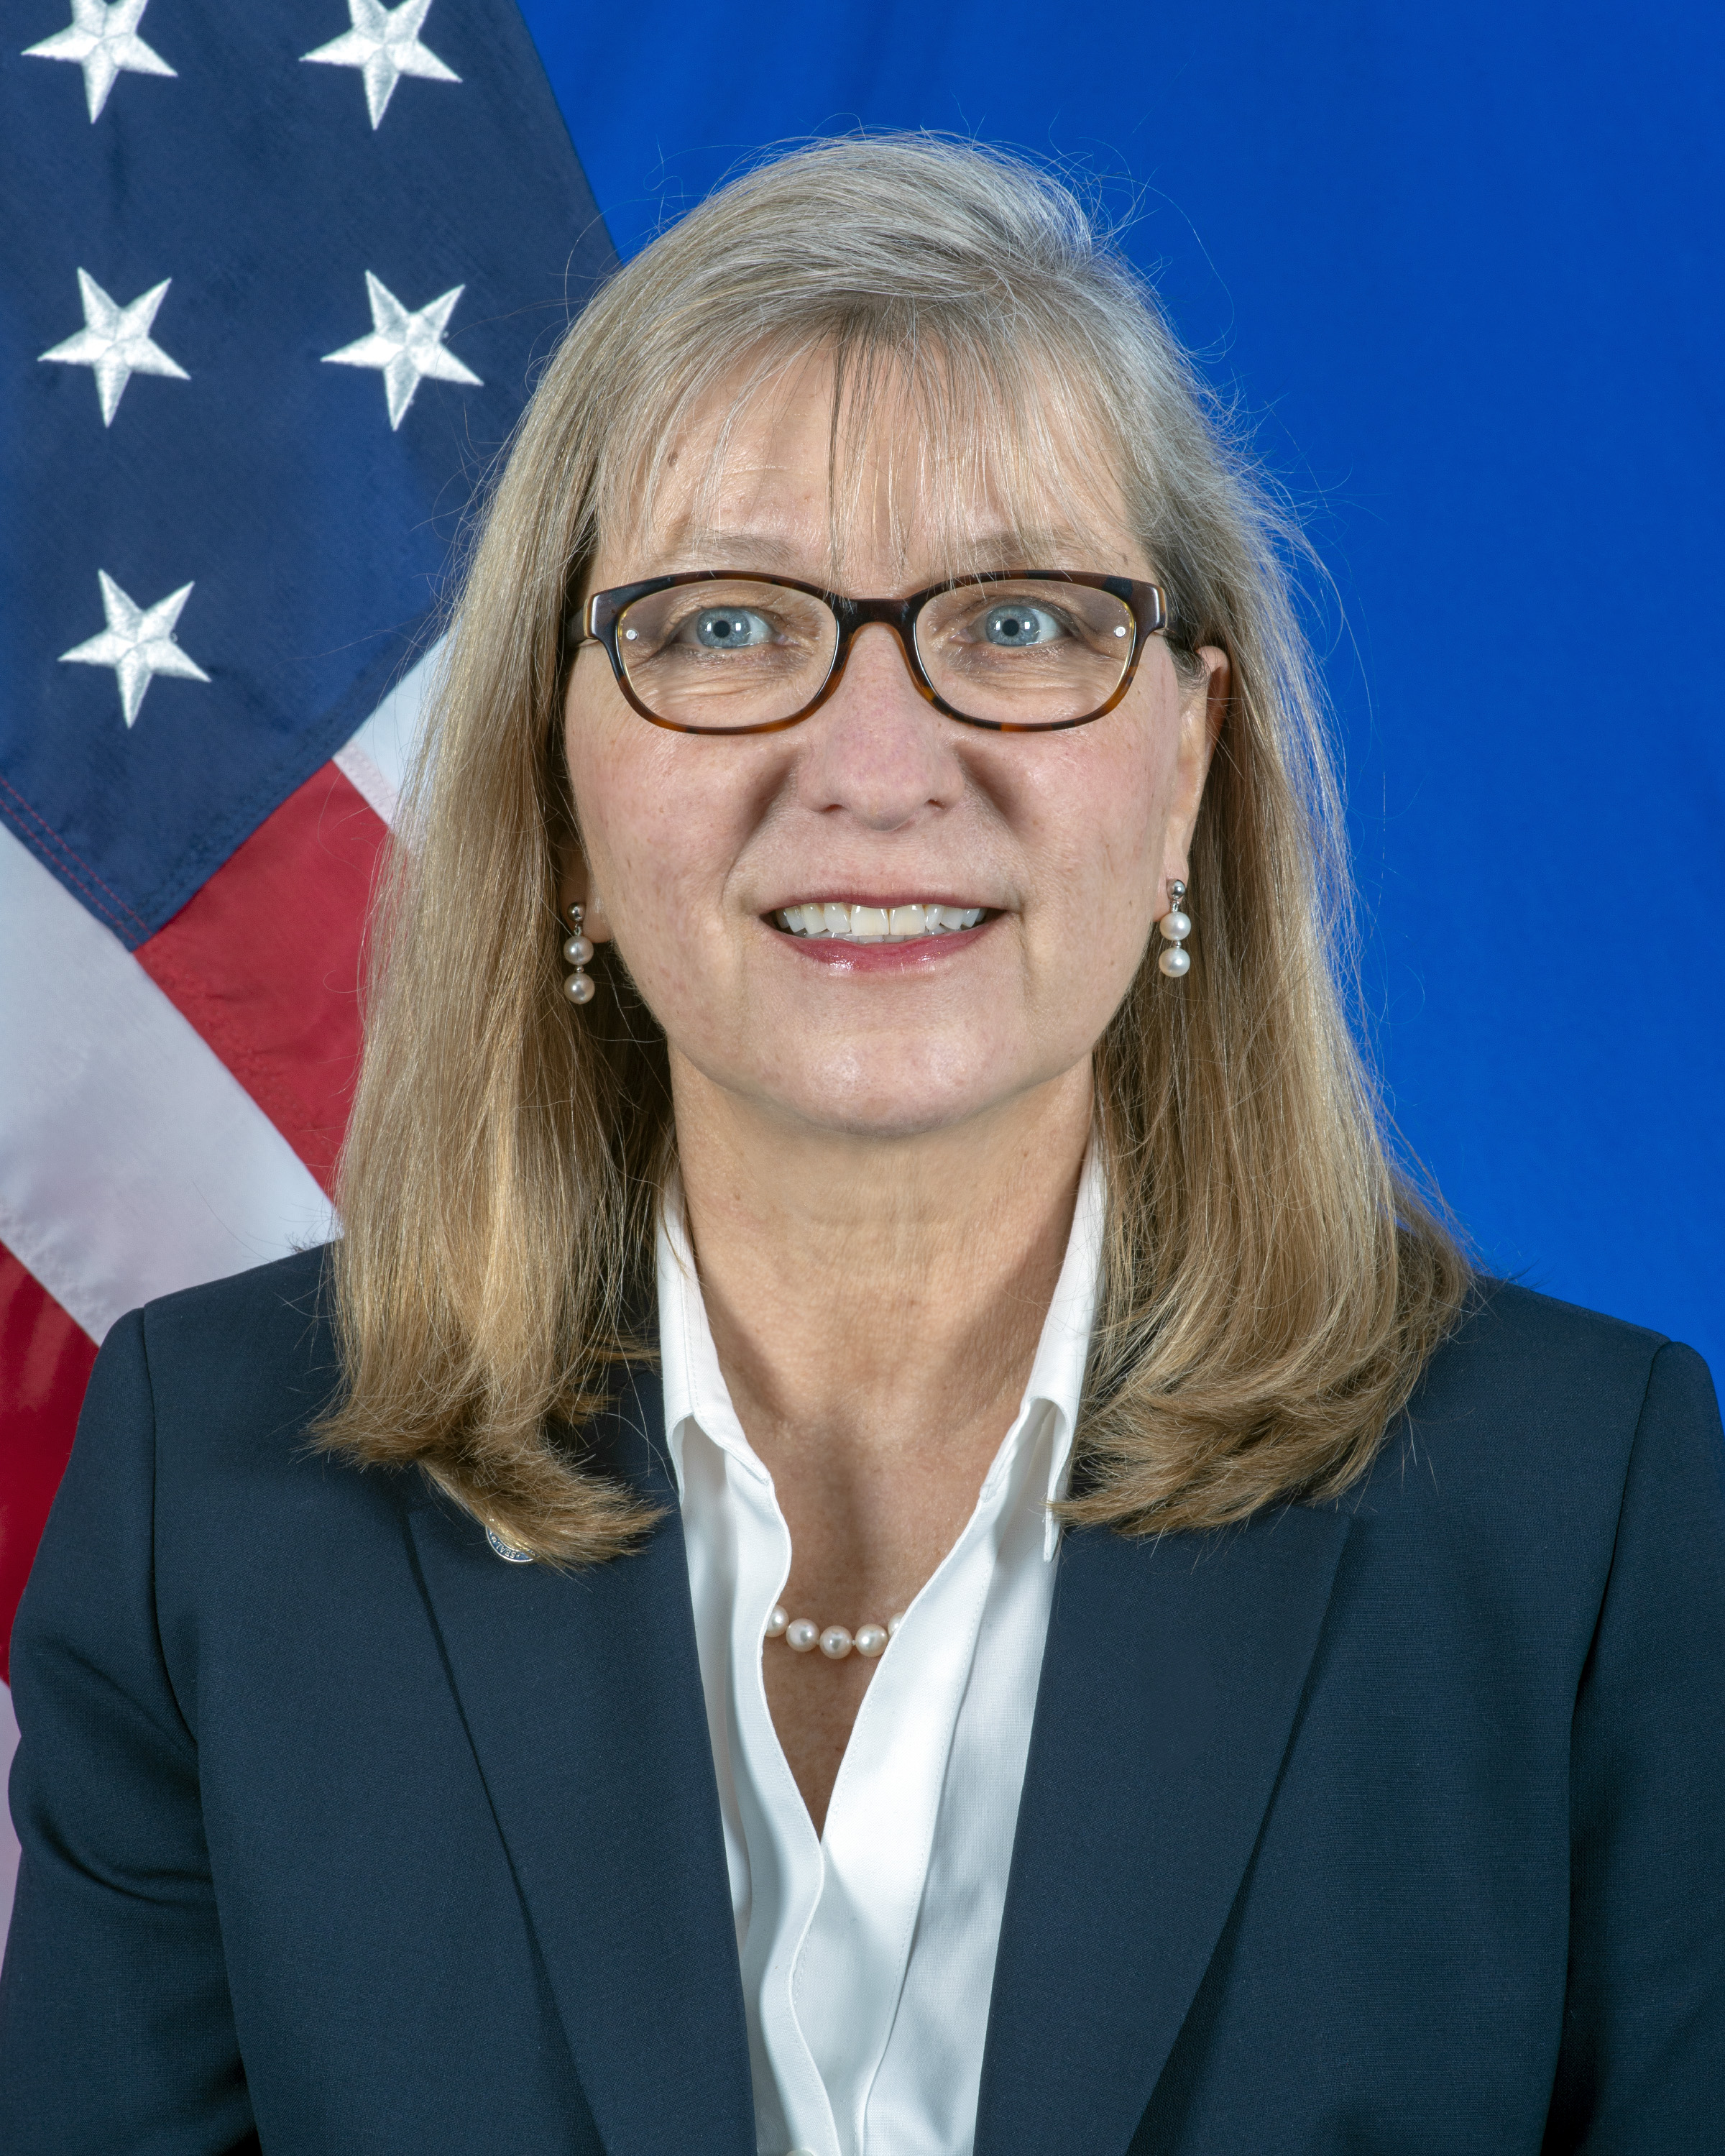 Dr. Sharon Brown-Hruska, Chief Economist